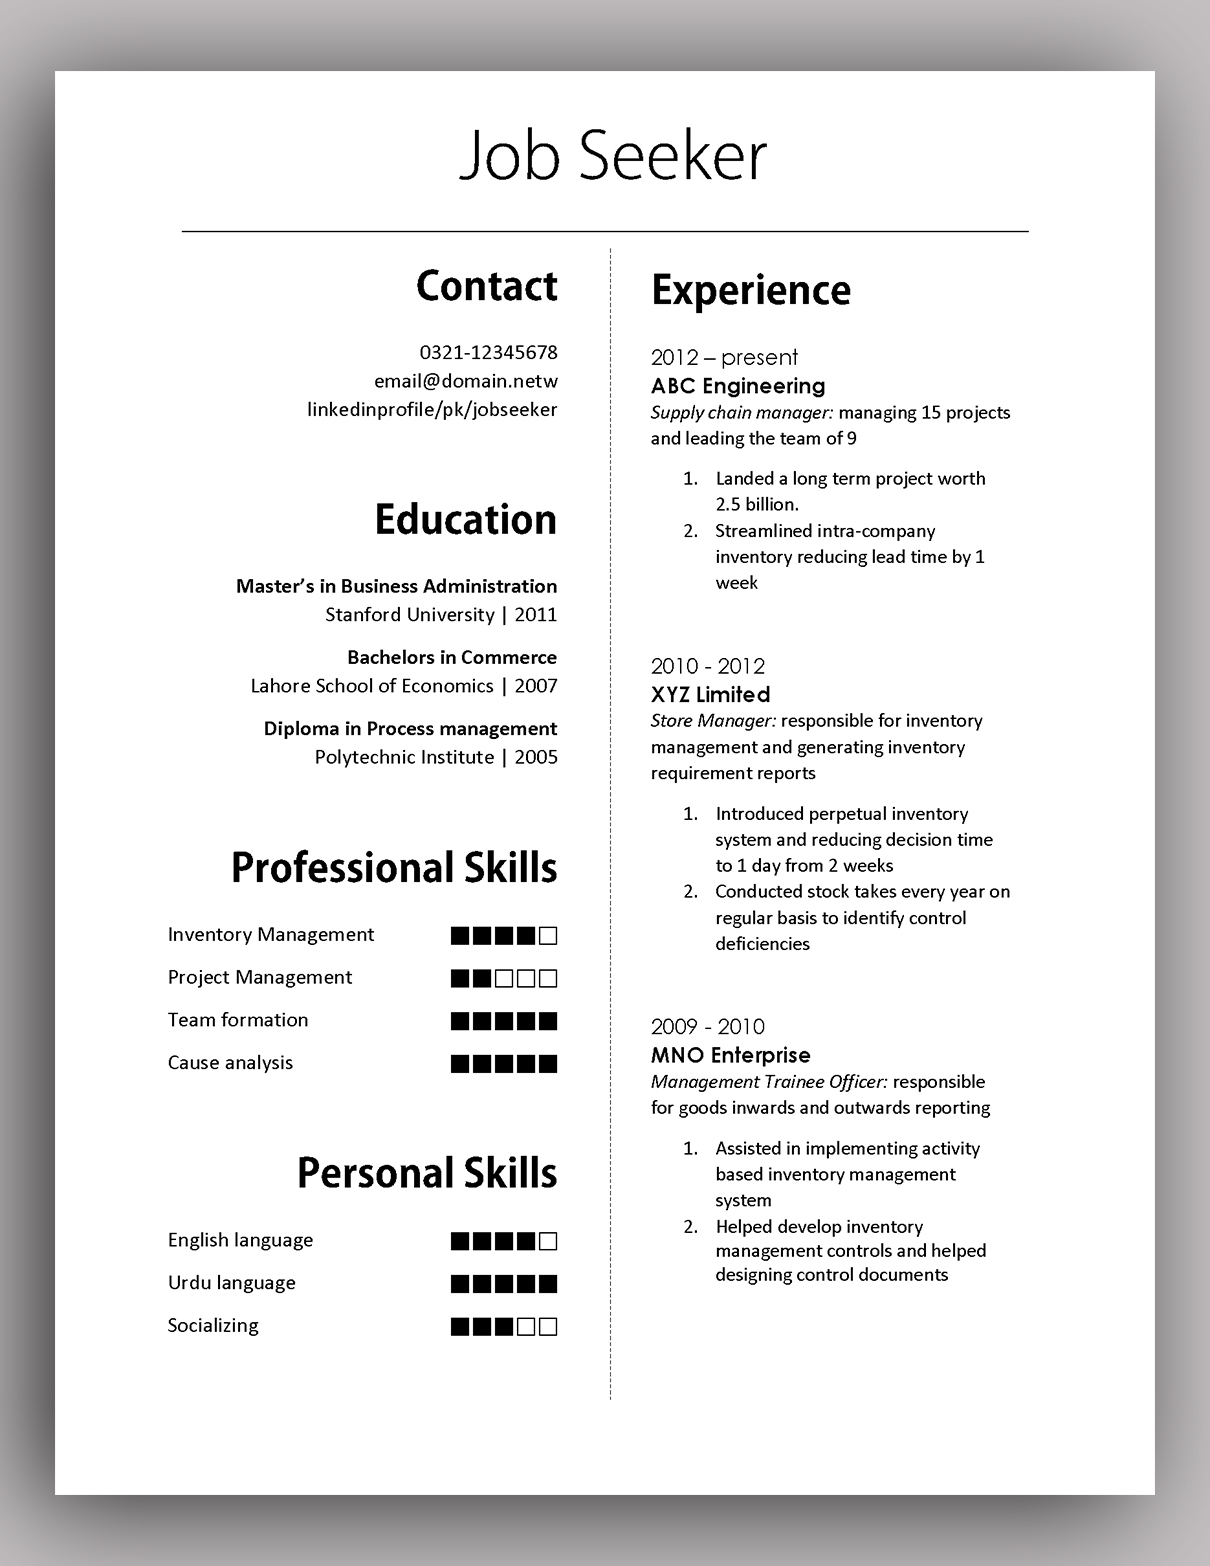 have come with a resume cv template that can help you land a job